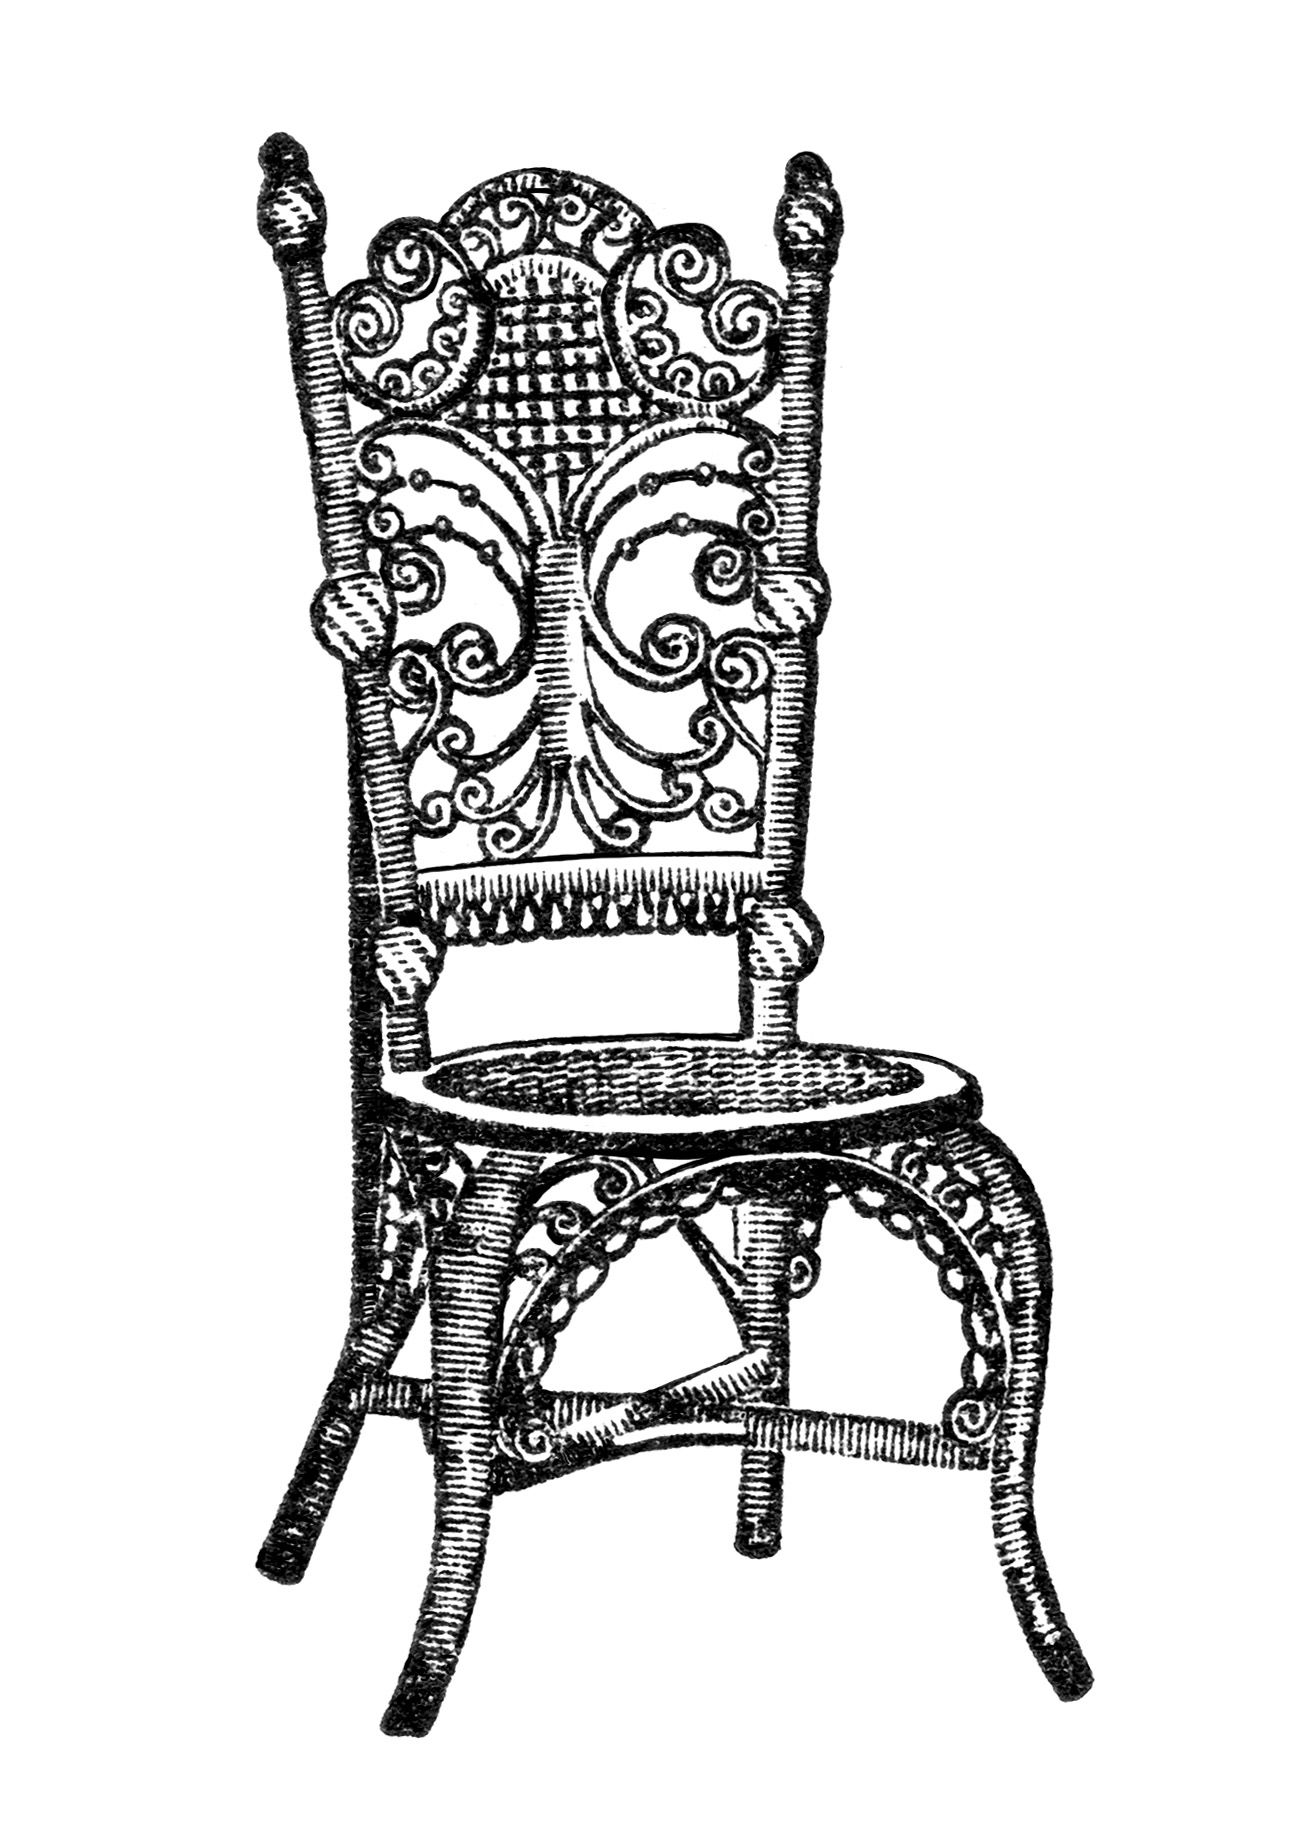 Waiting room chair clipart graphic royalty free download Ornamental Reception Chair Clip Art | Vintage Furniture ... graphic royalty free download